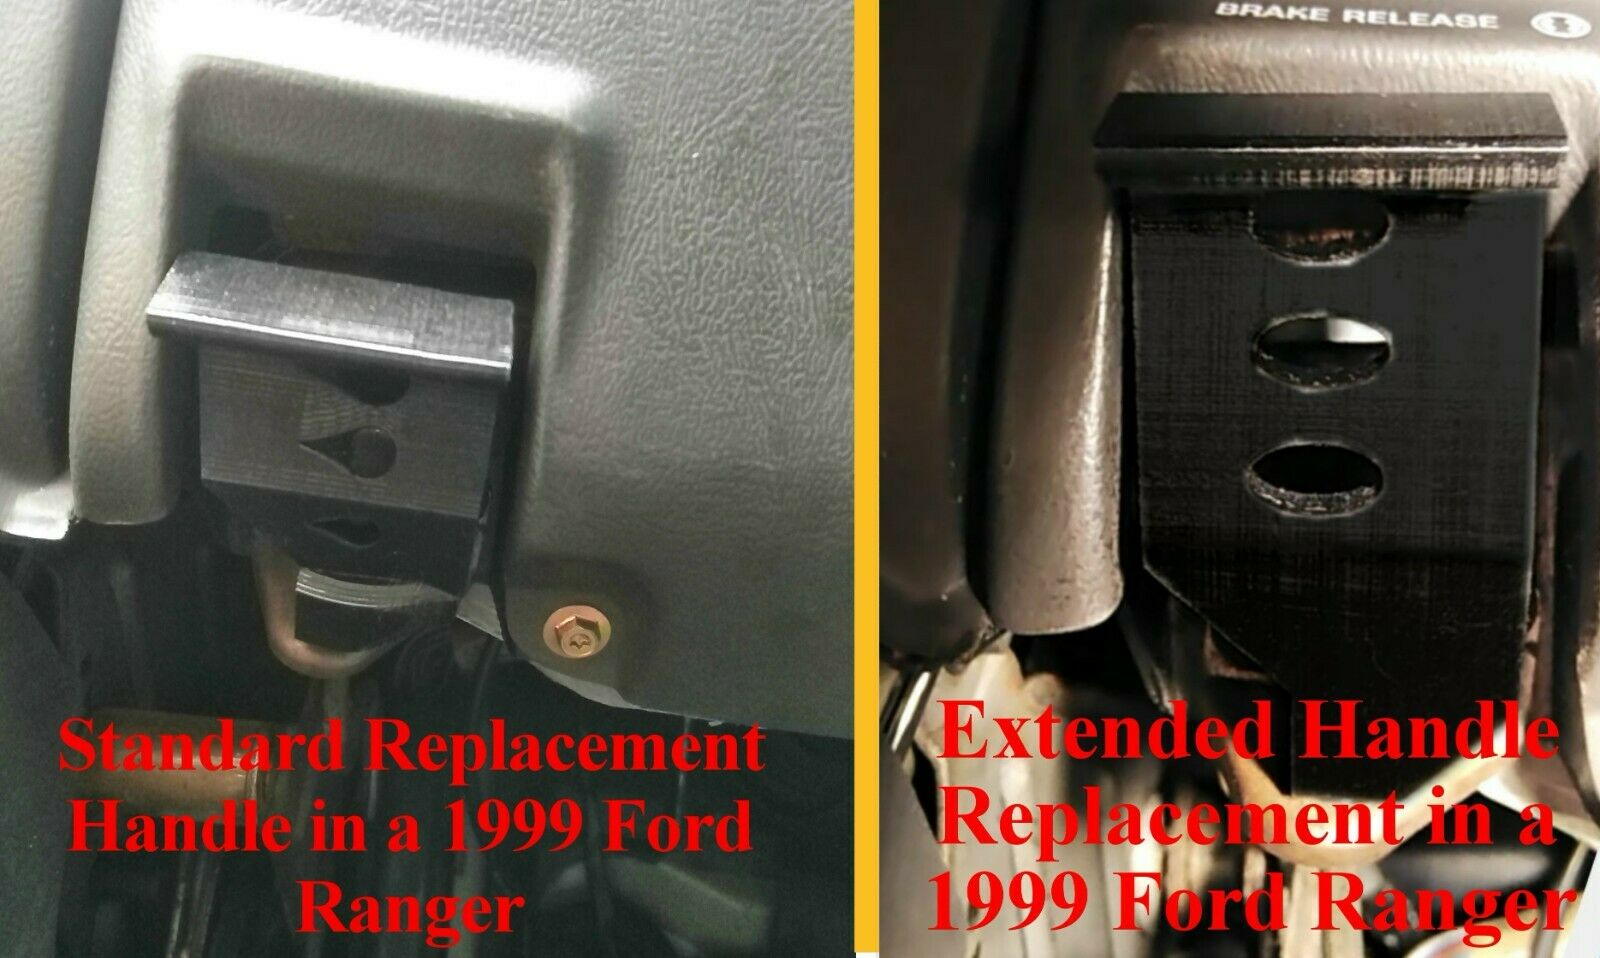 MERCURY MOUNTAINEER PARKING BRAKE RELEASE HANDLE REPLACEMENT - STANDARD - BLACK Not Applicable